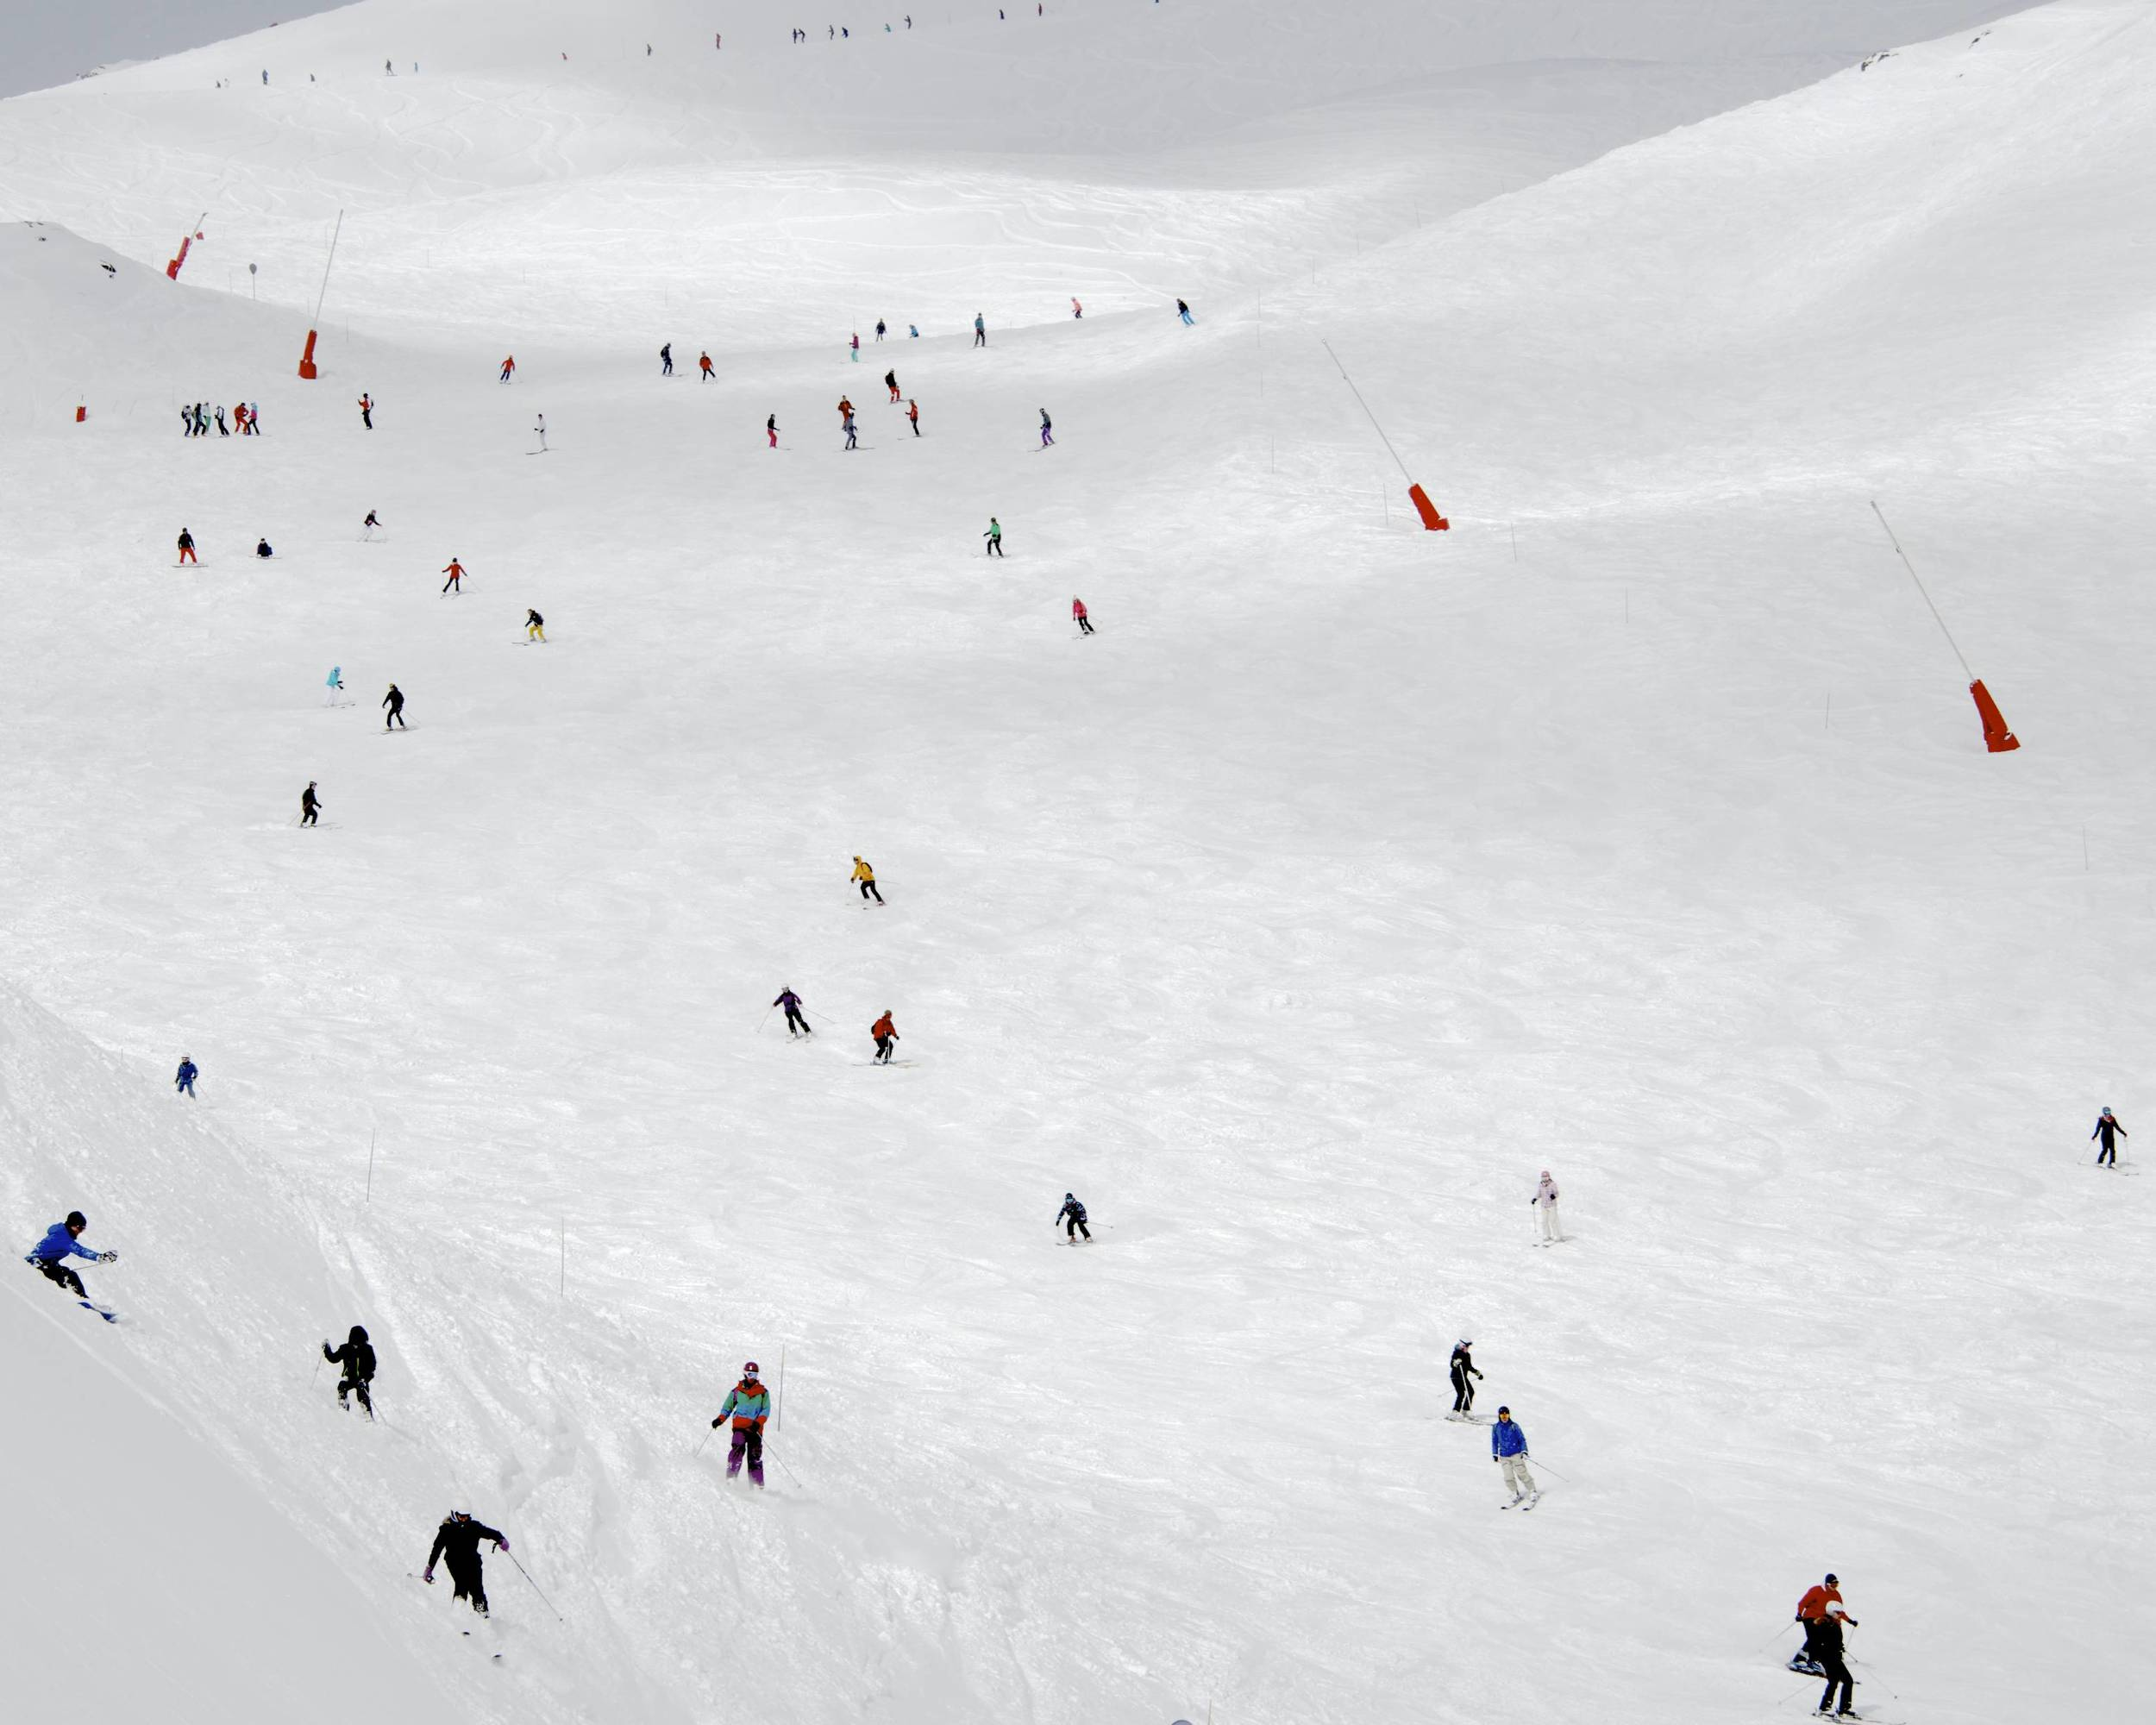 Crowded Slopes III, 2015